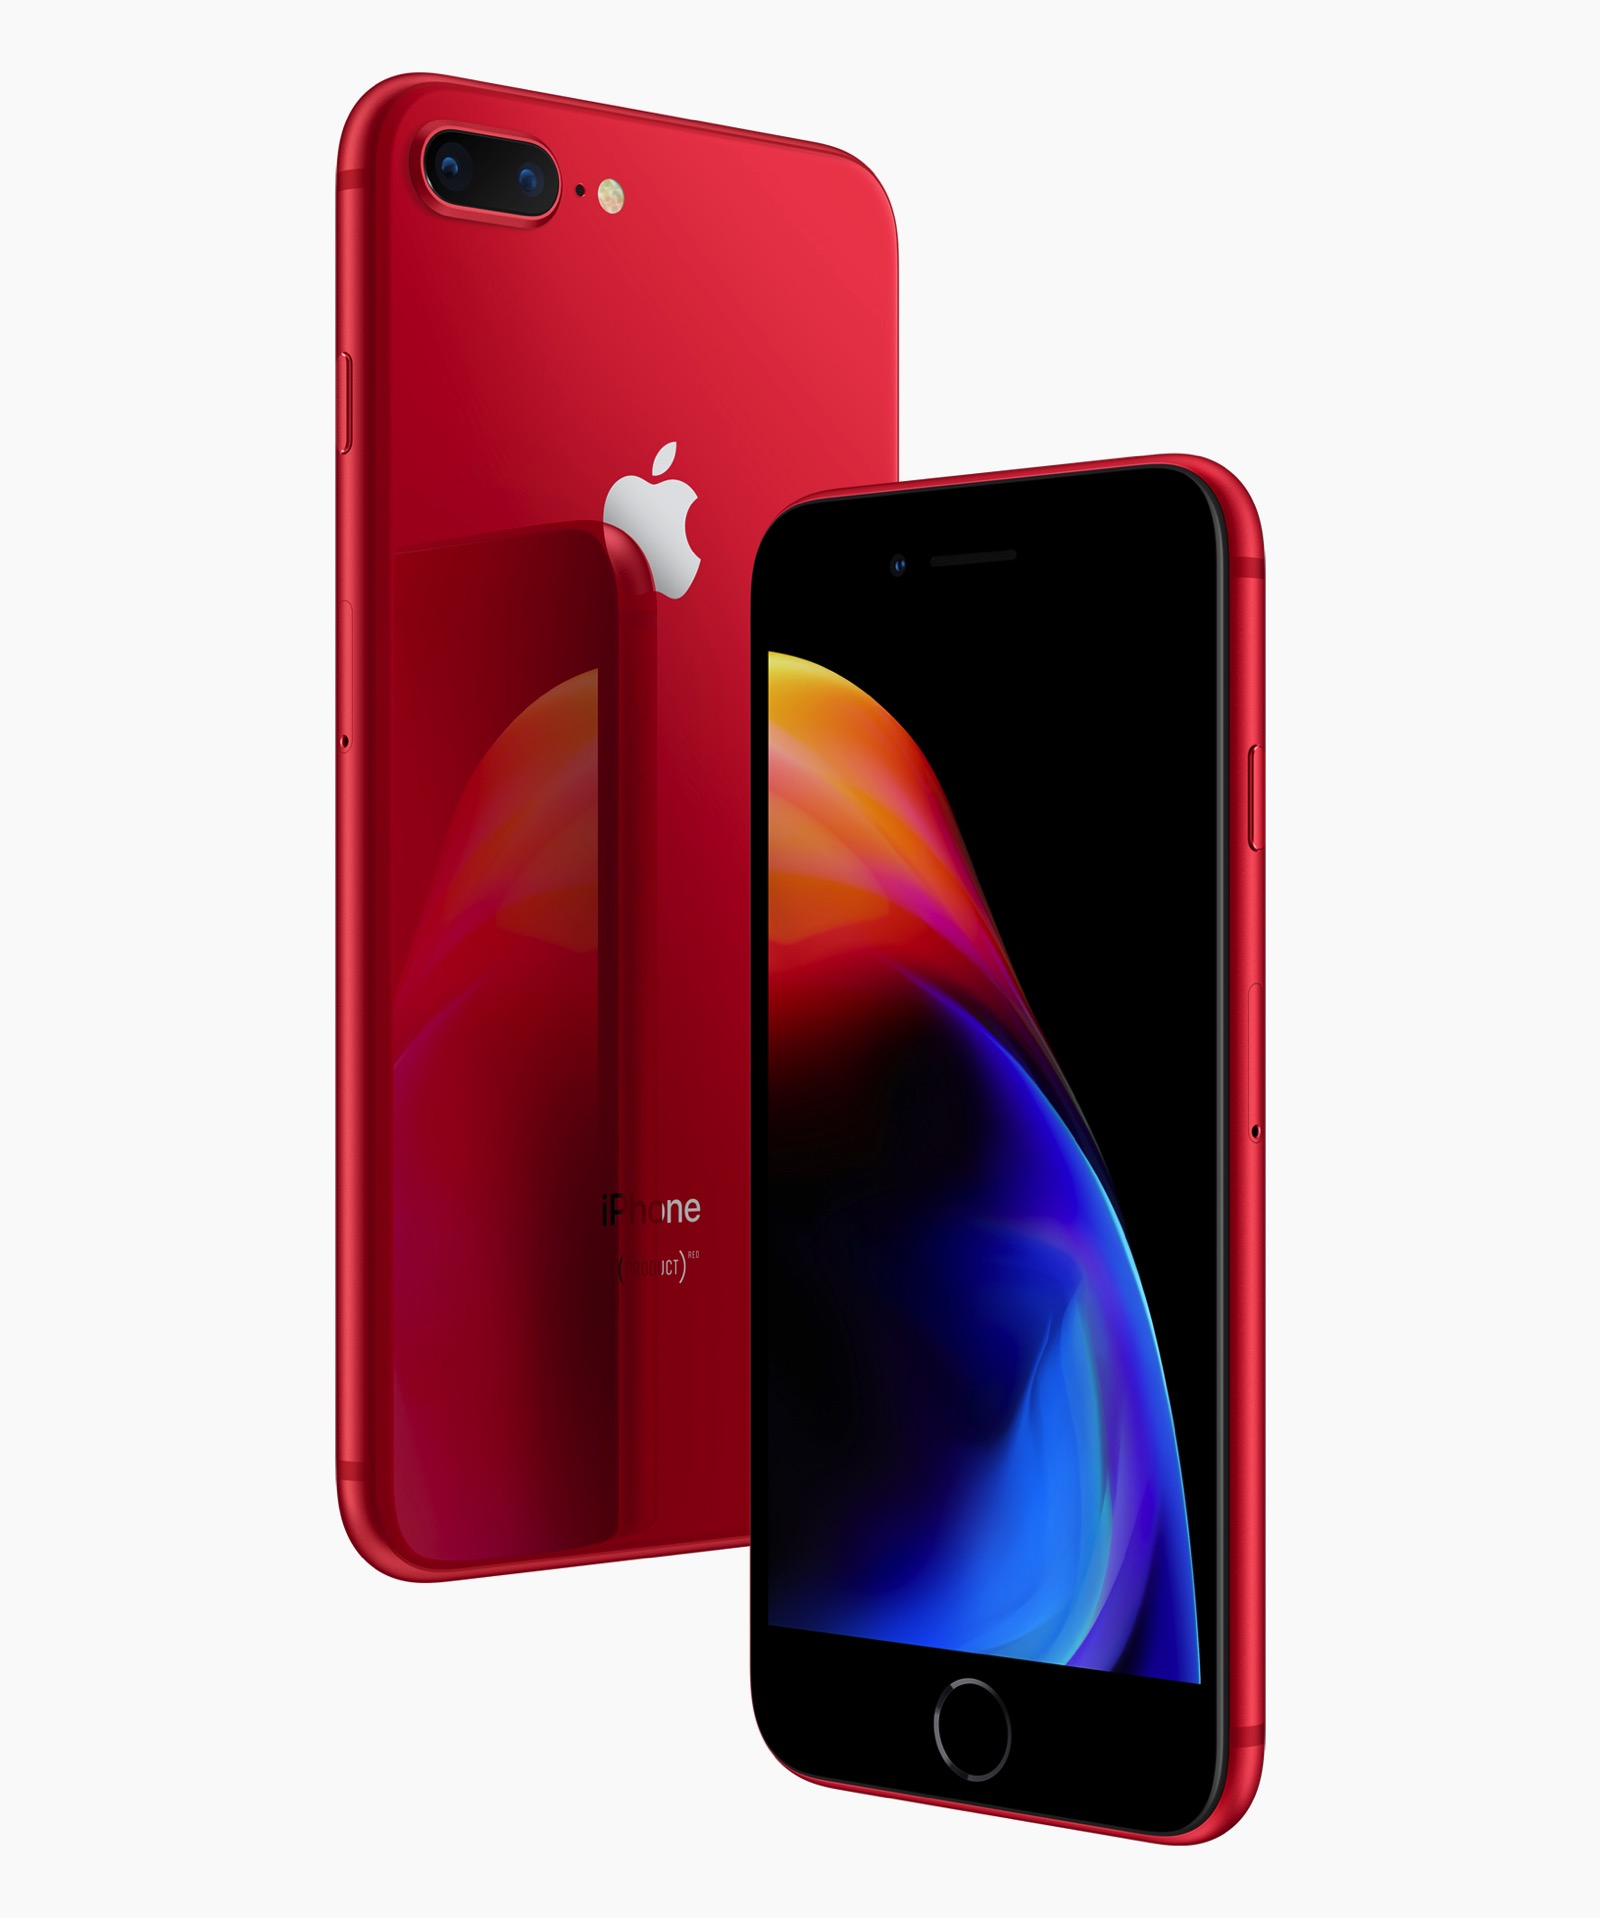 IPhone8 iPhone8PLUS PRODUCT RED front back 041018